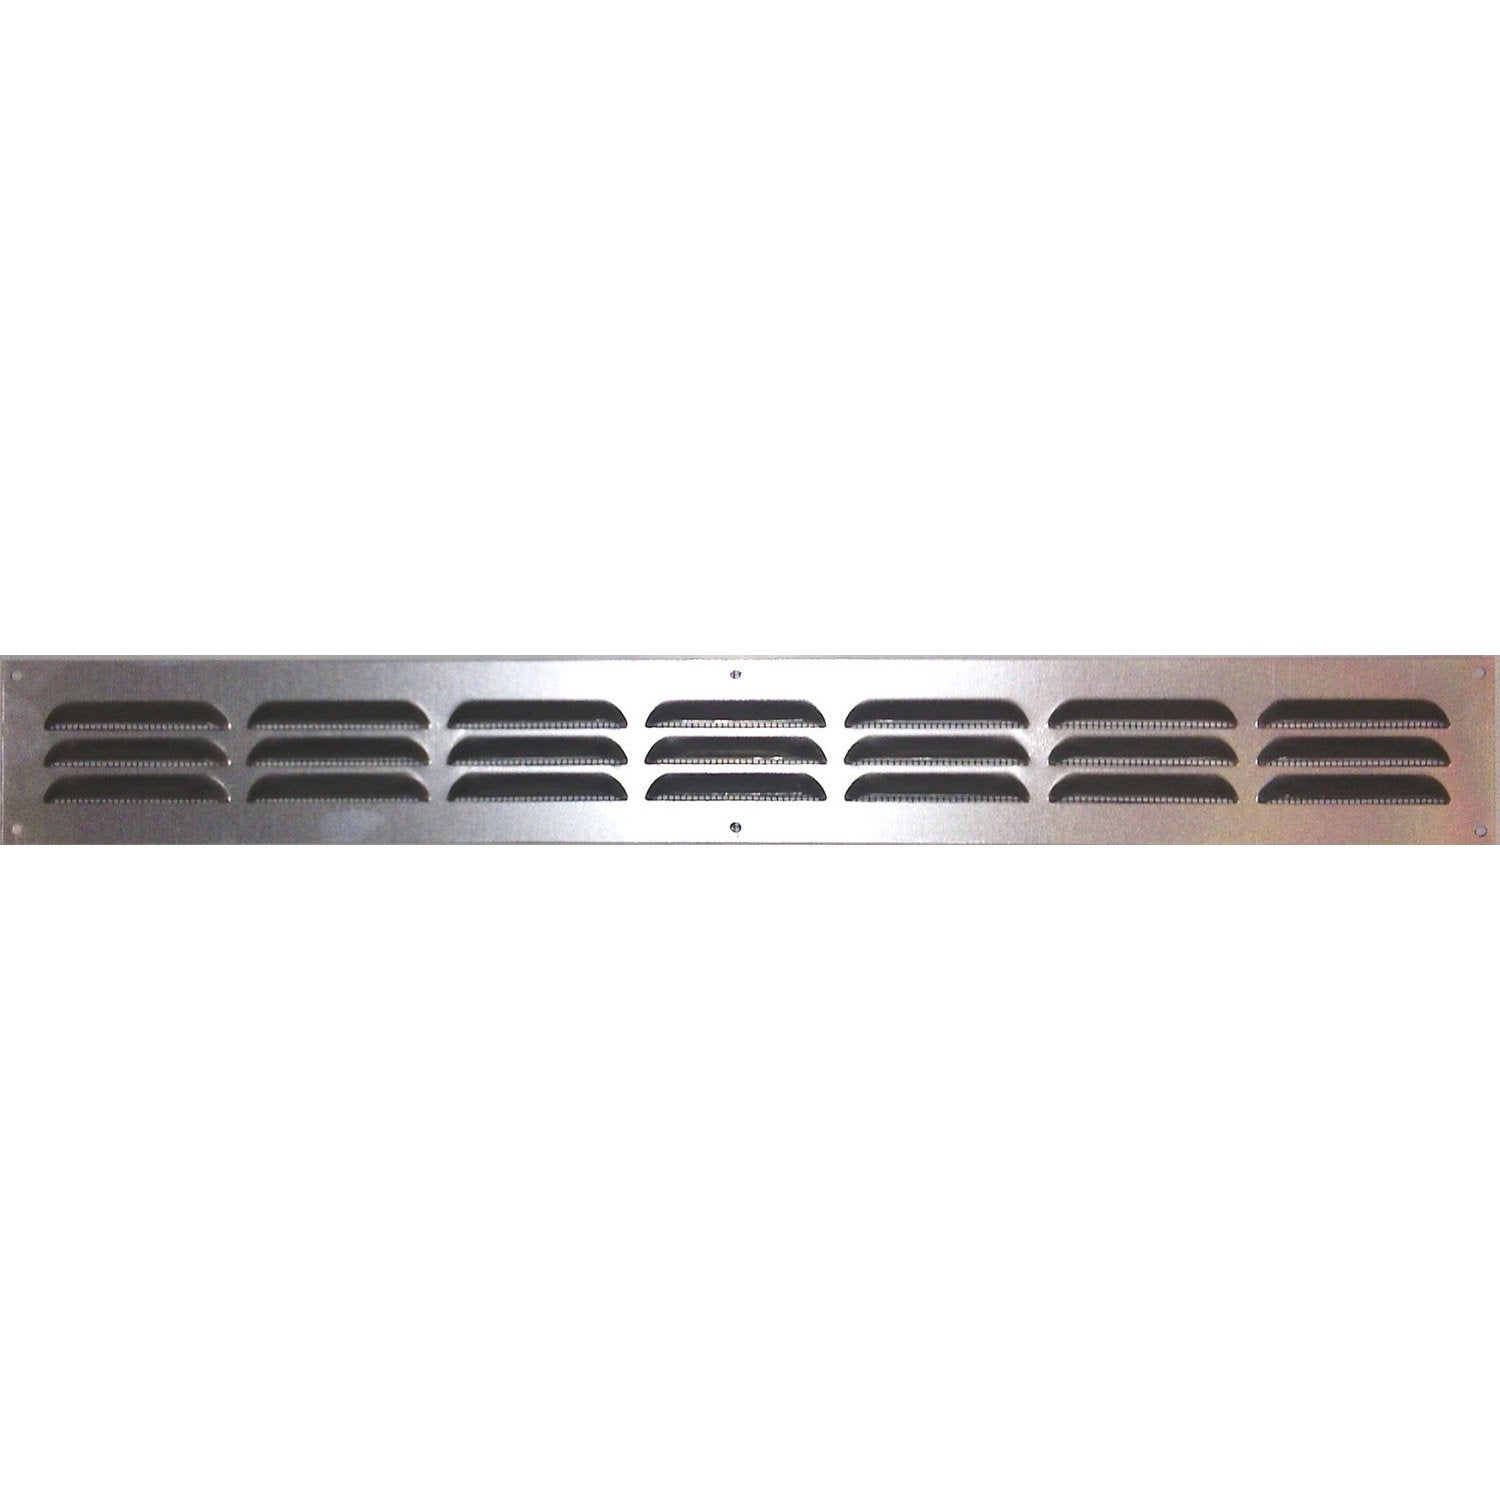 Grille d 39 a ration visser aluminium anodis 40x5cm for Installer grille aeration fenetre